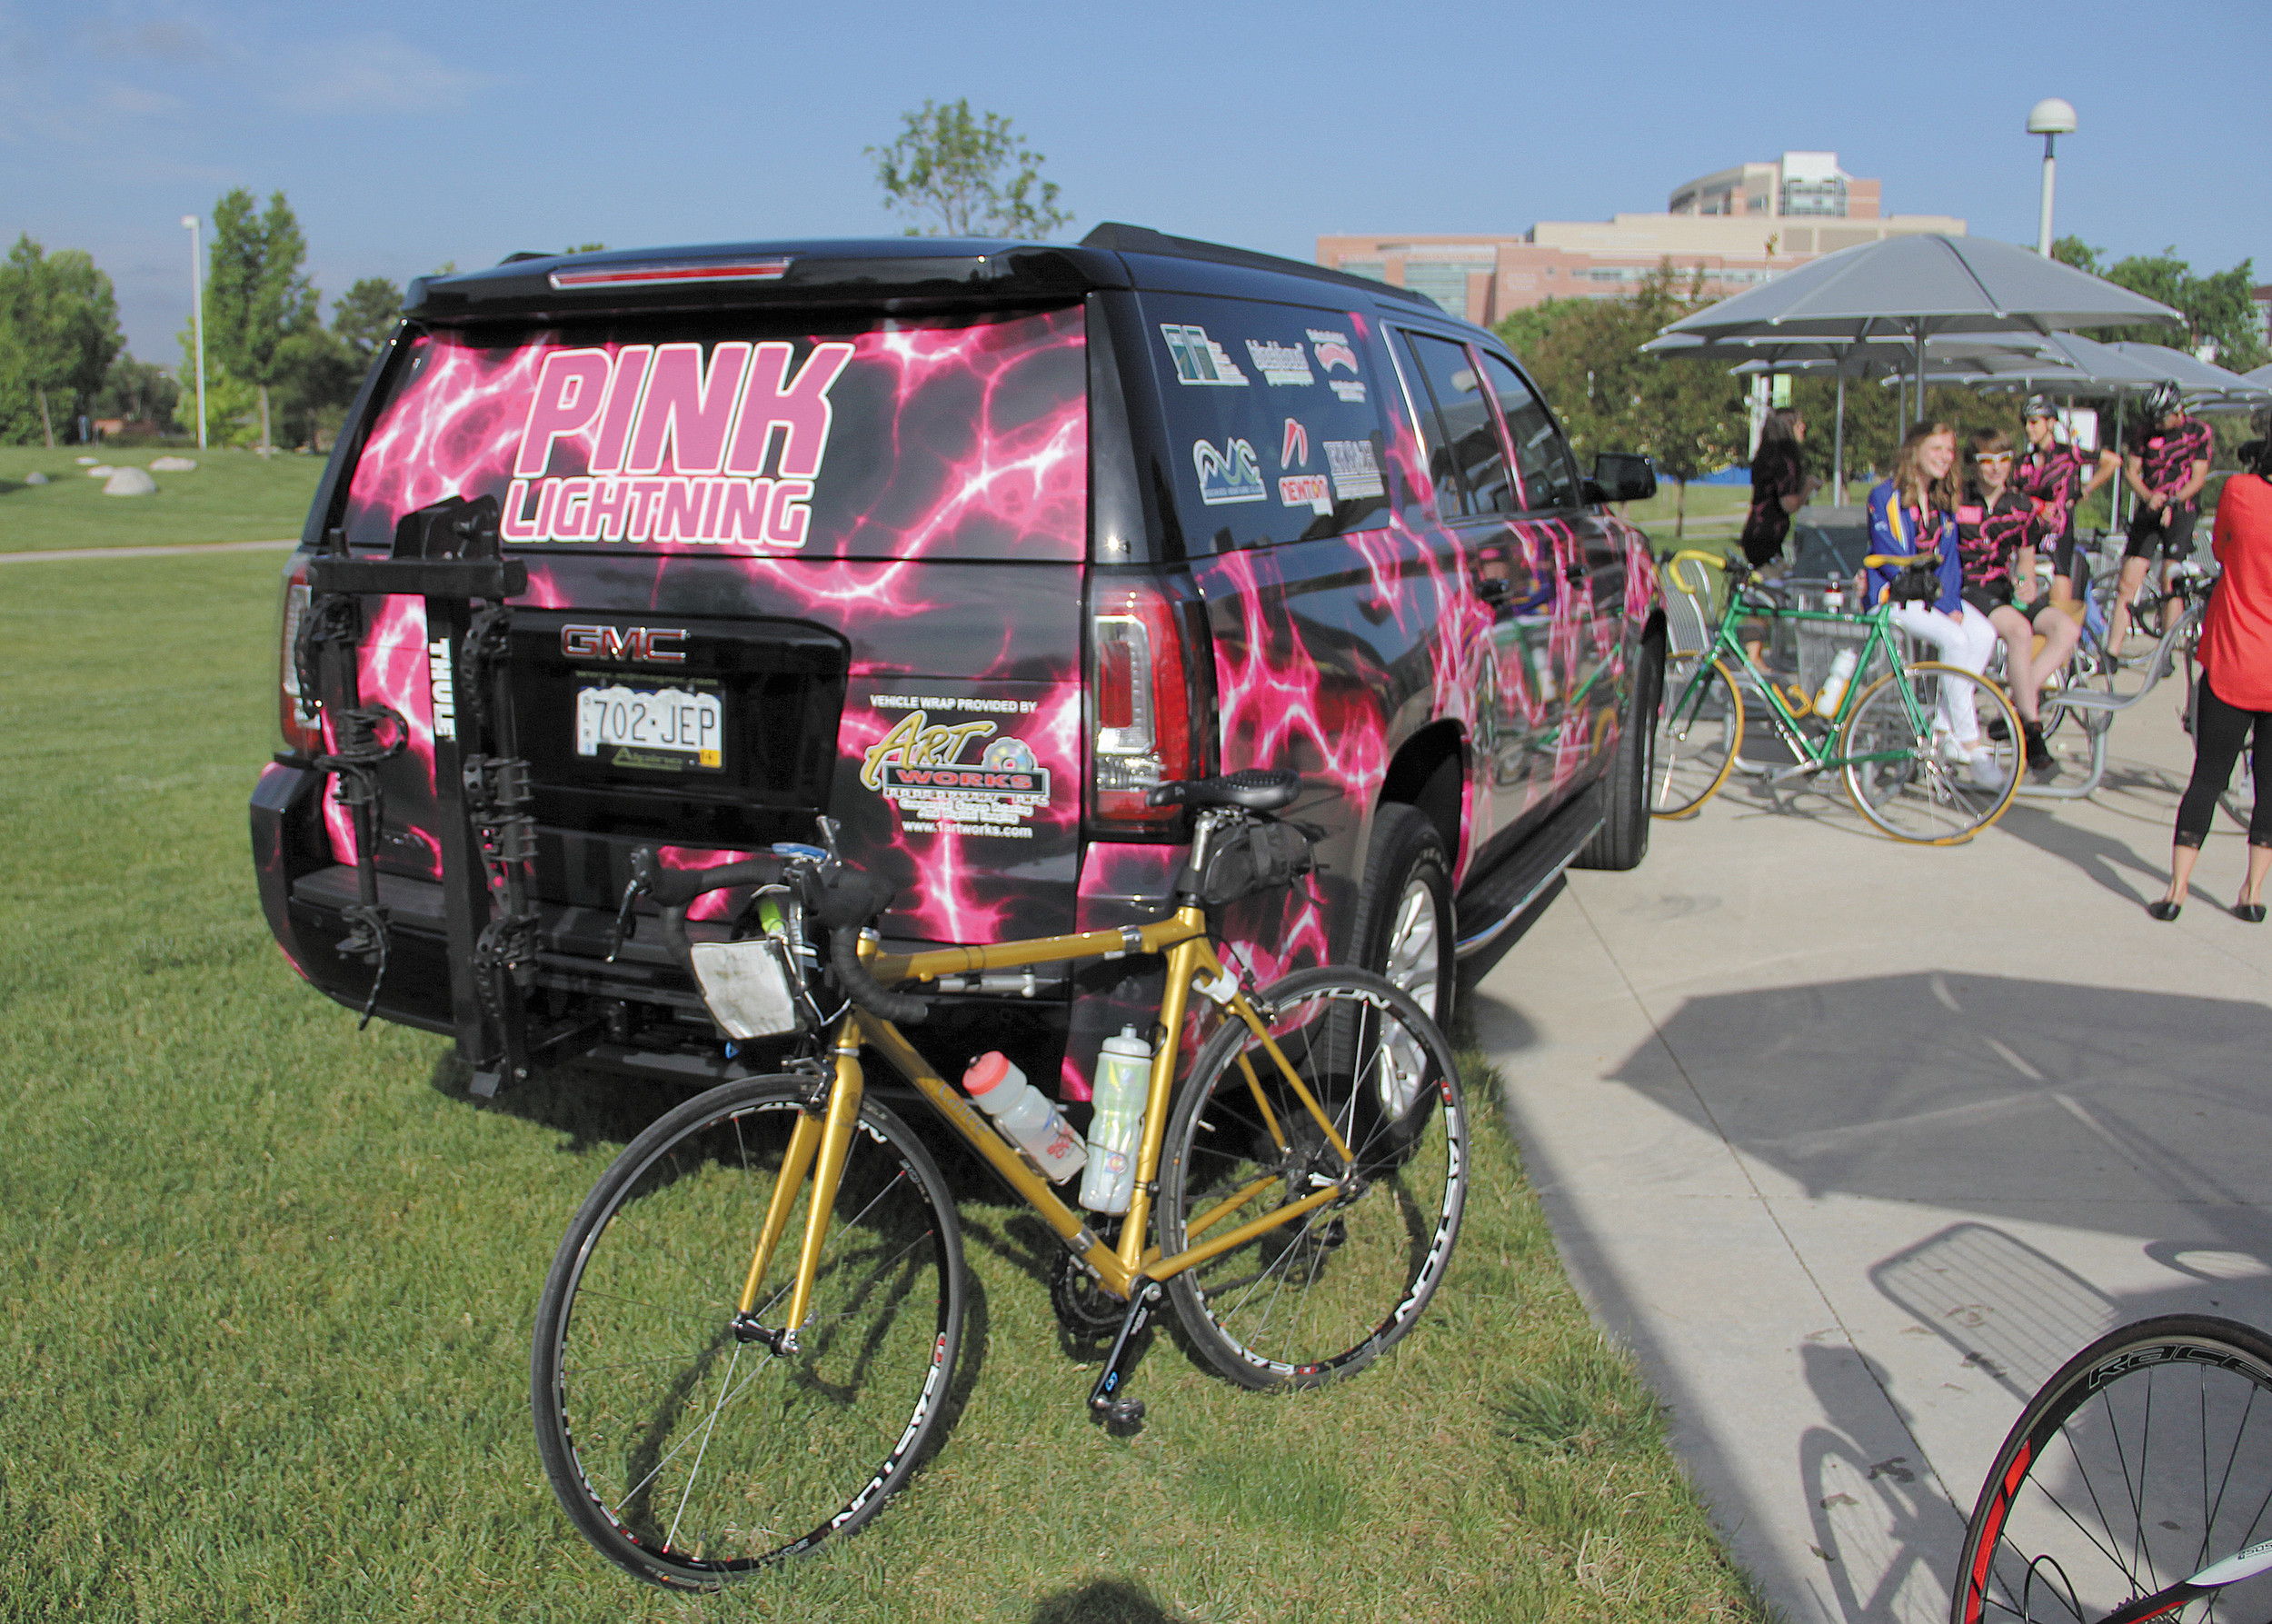 Bryan Warnecke, 15 of Castle Rock, hosted the Pink Lightning Tour to raise money and awareness for cystic fibrosis Saturday June 7.The 29.76 mile ride stretched from Children's Colorado's main campus at the Anschutz Medical Campus in Aurora to Children's Colorado's North Campus in Broomfield.